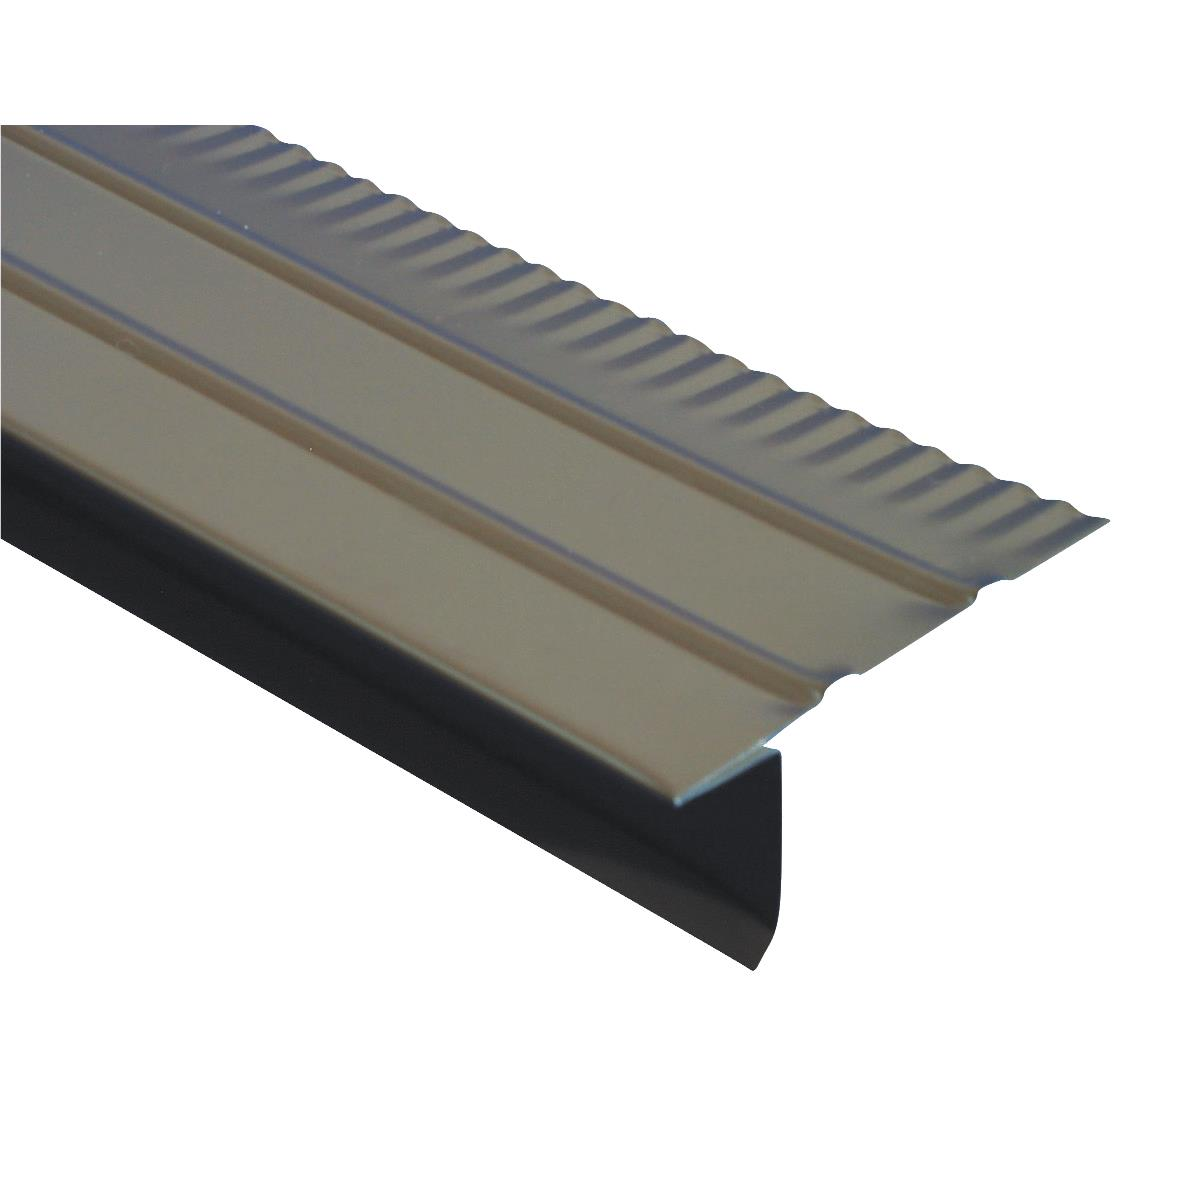 Amerimax Aluminum F Style Overhanging Roof & Drip Edge Flashing 5505419120